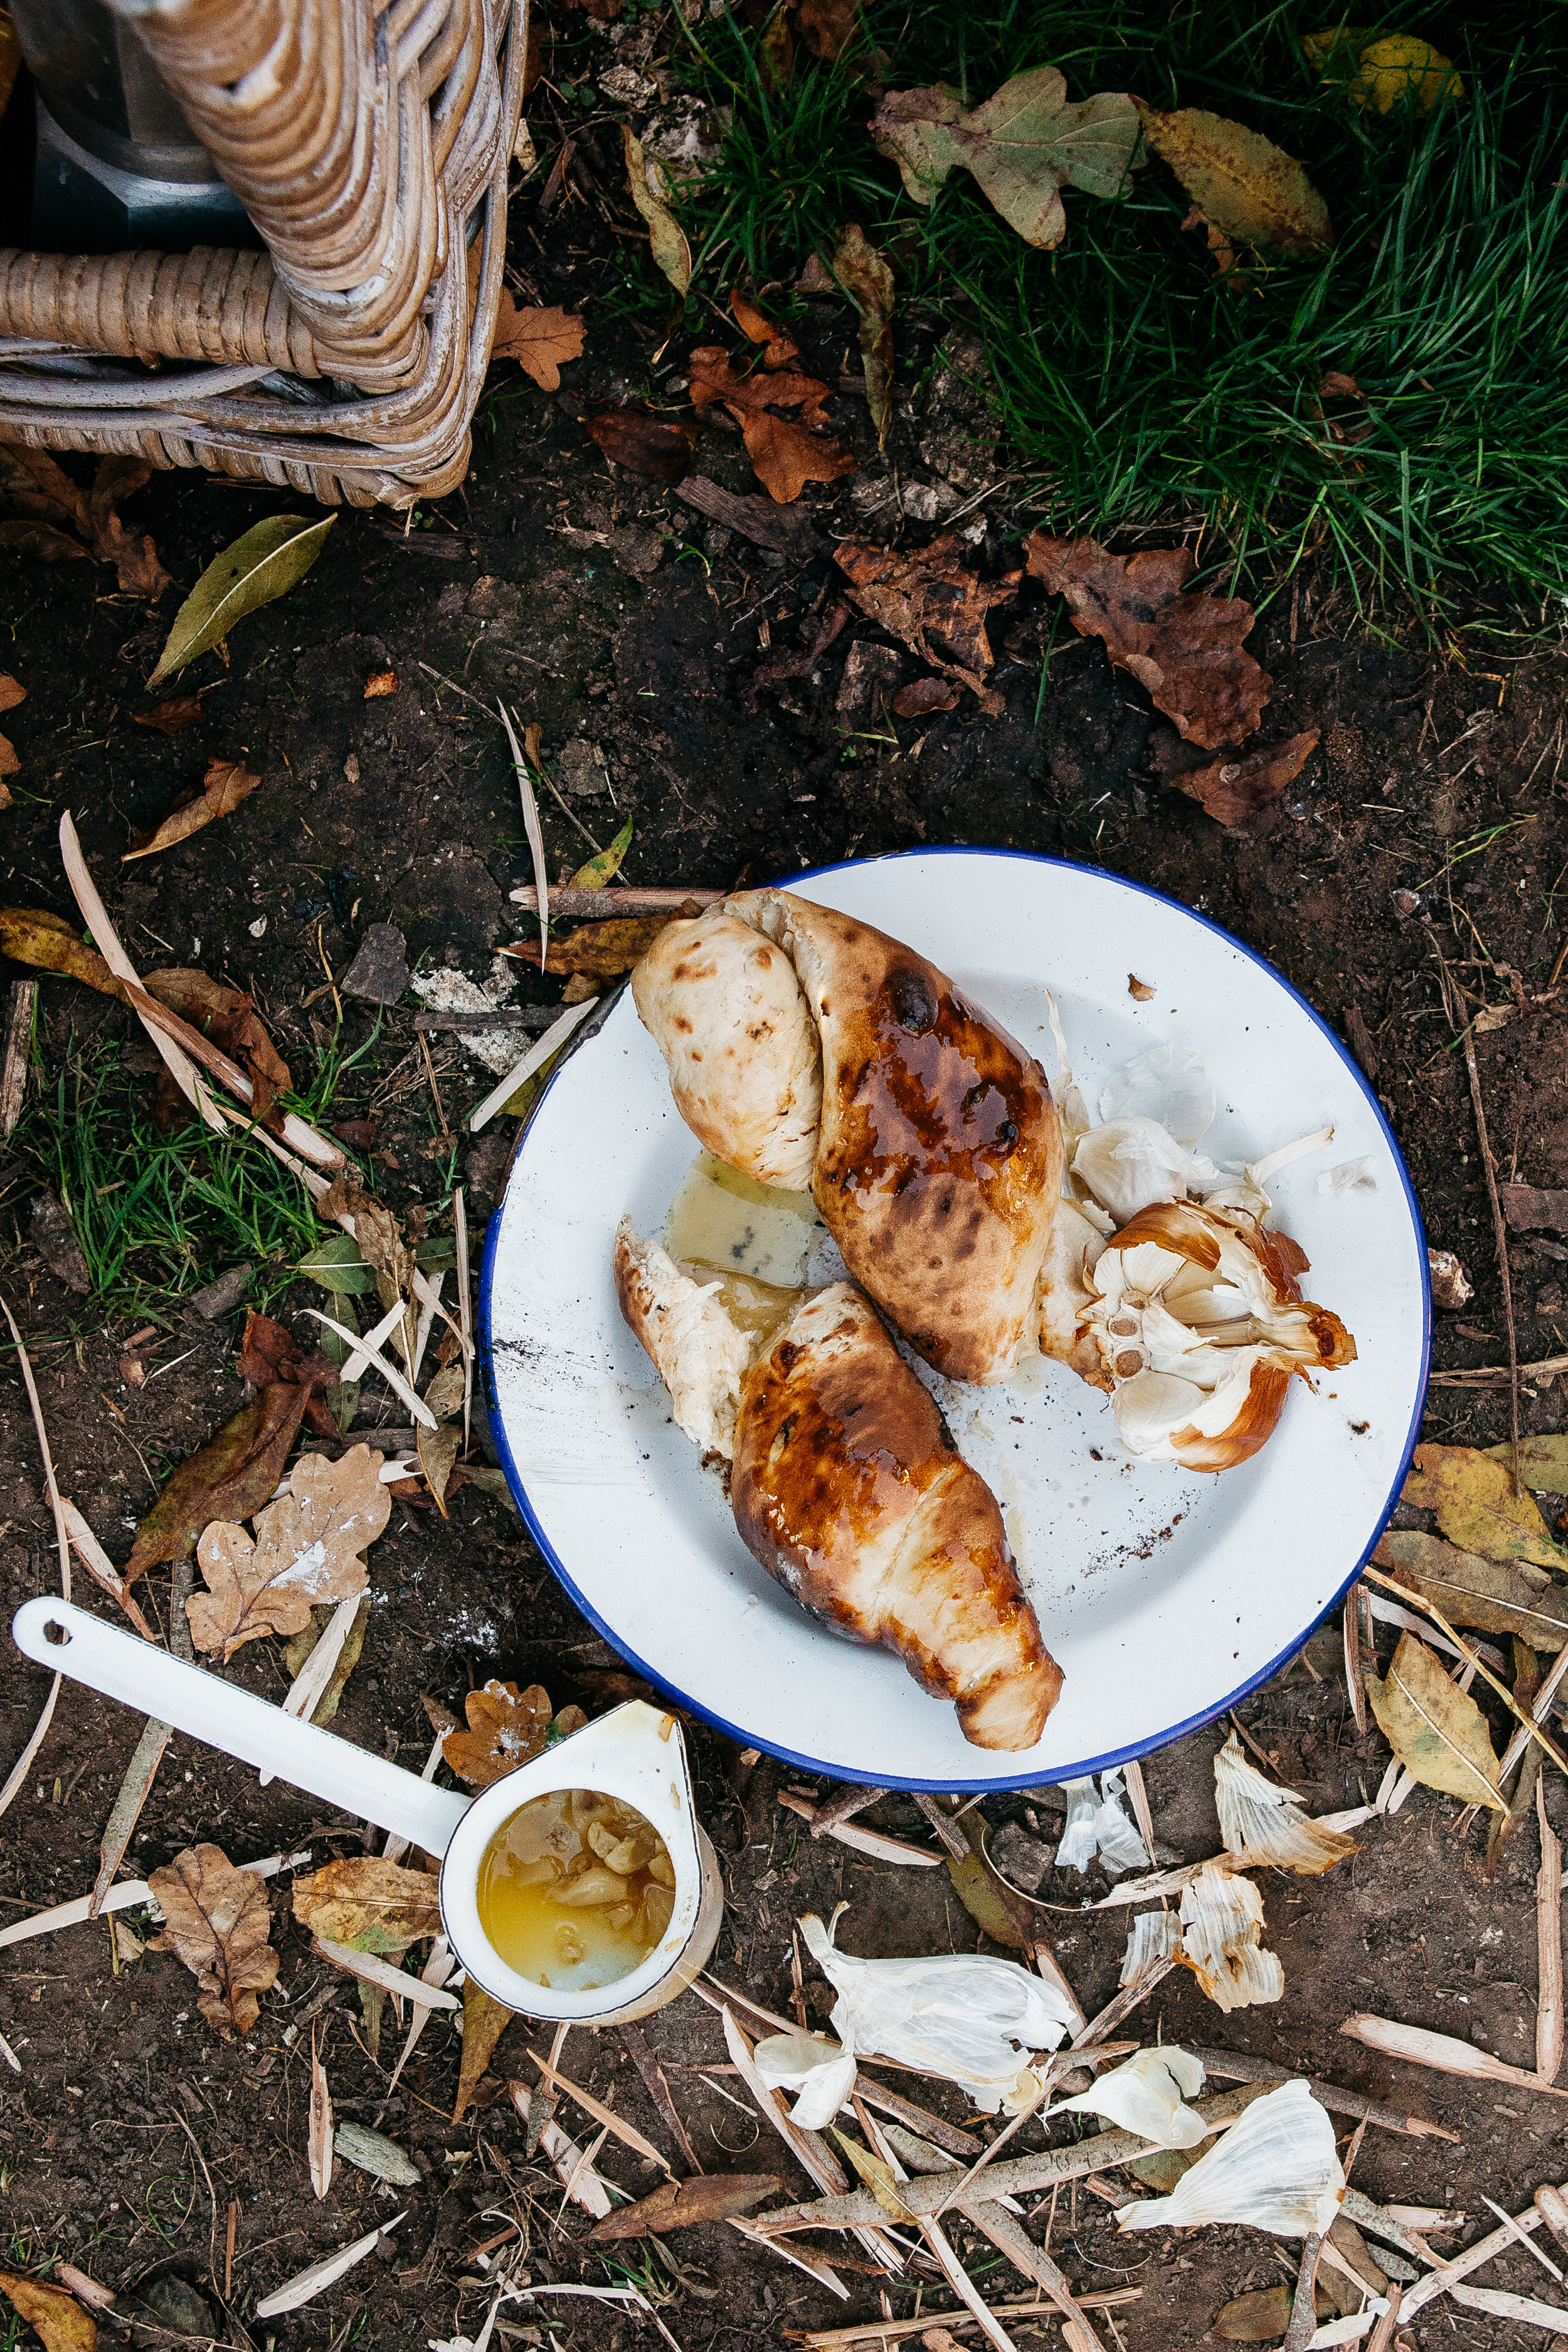 Campfire Bread with Roasted Smoked Garlic Butter